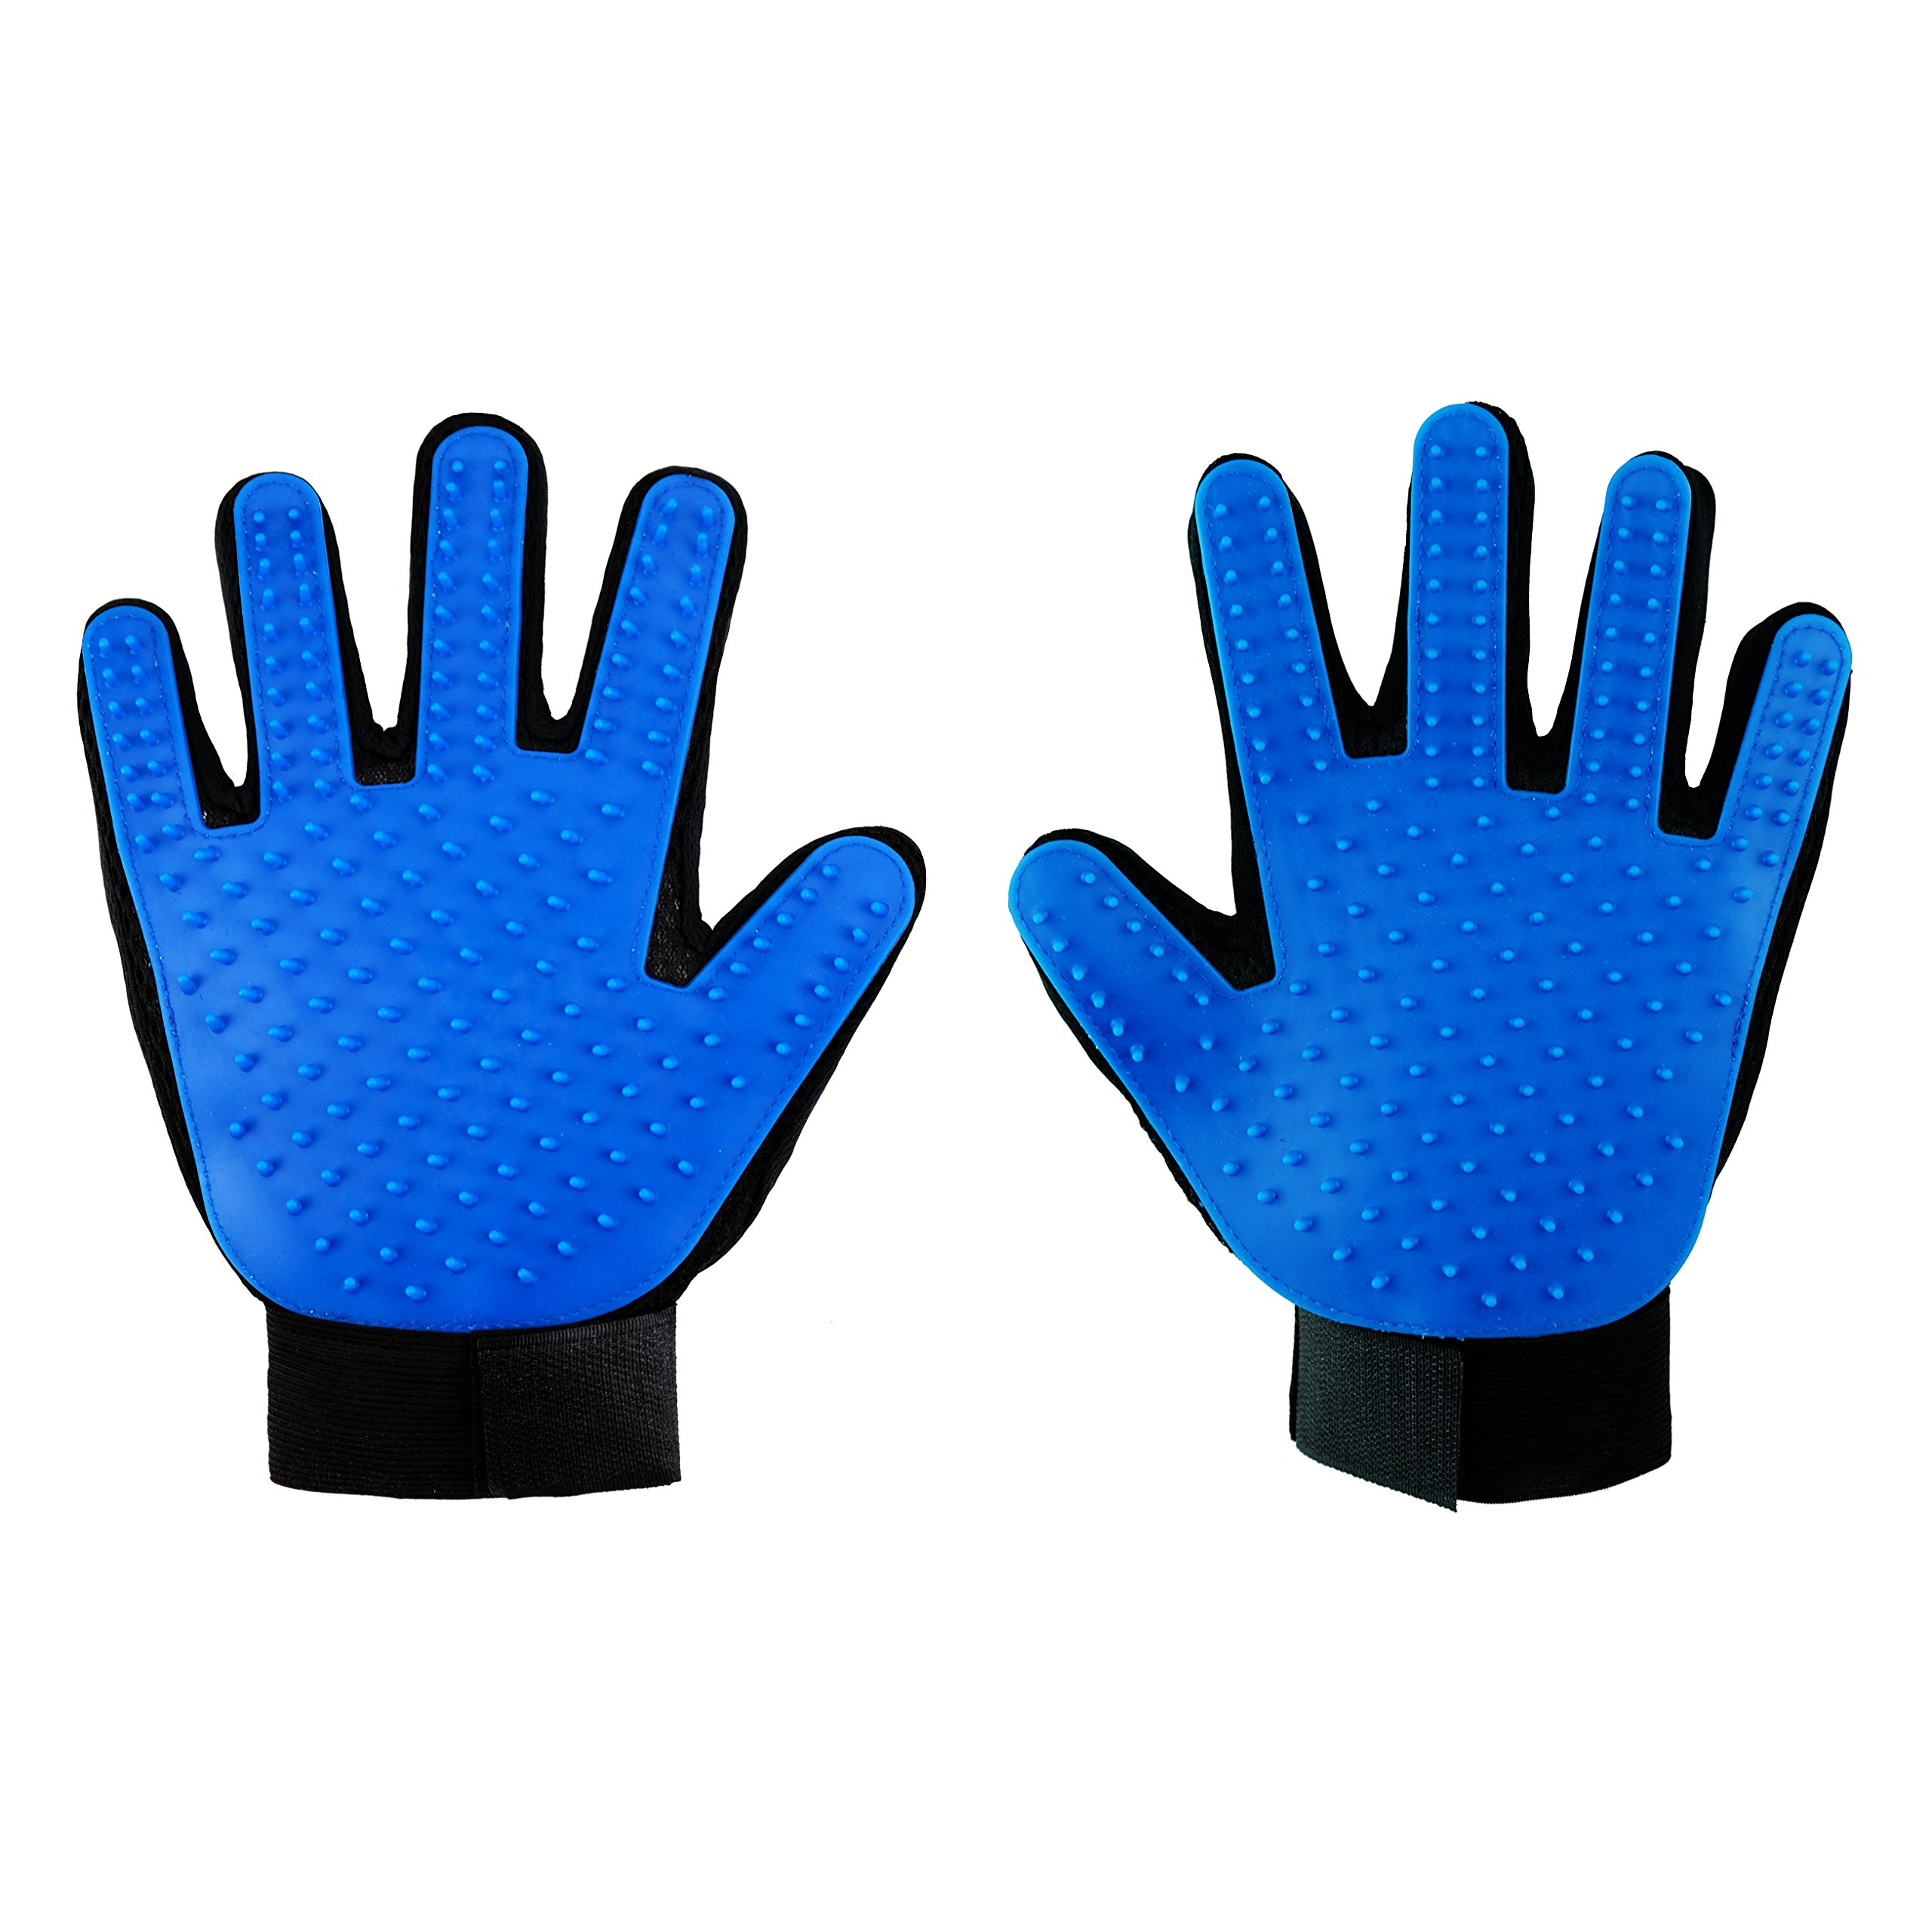 Happy Pet Grooming Glove - Gentle Deshedding Brush Glove - Efficient Pet Hair Remover Mitt - Massage Tool Perfect for Dogs & Cats with Long & Short hair (Blue, One Pair)